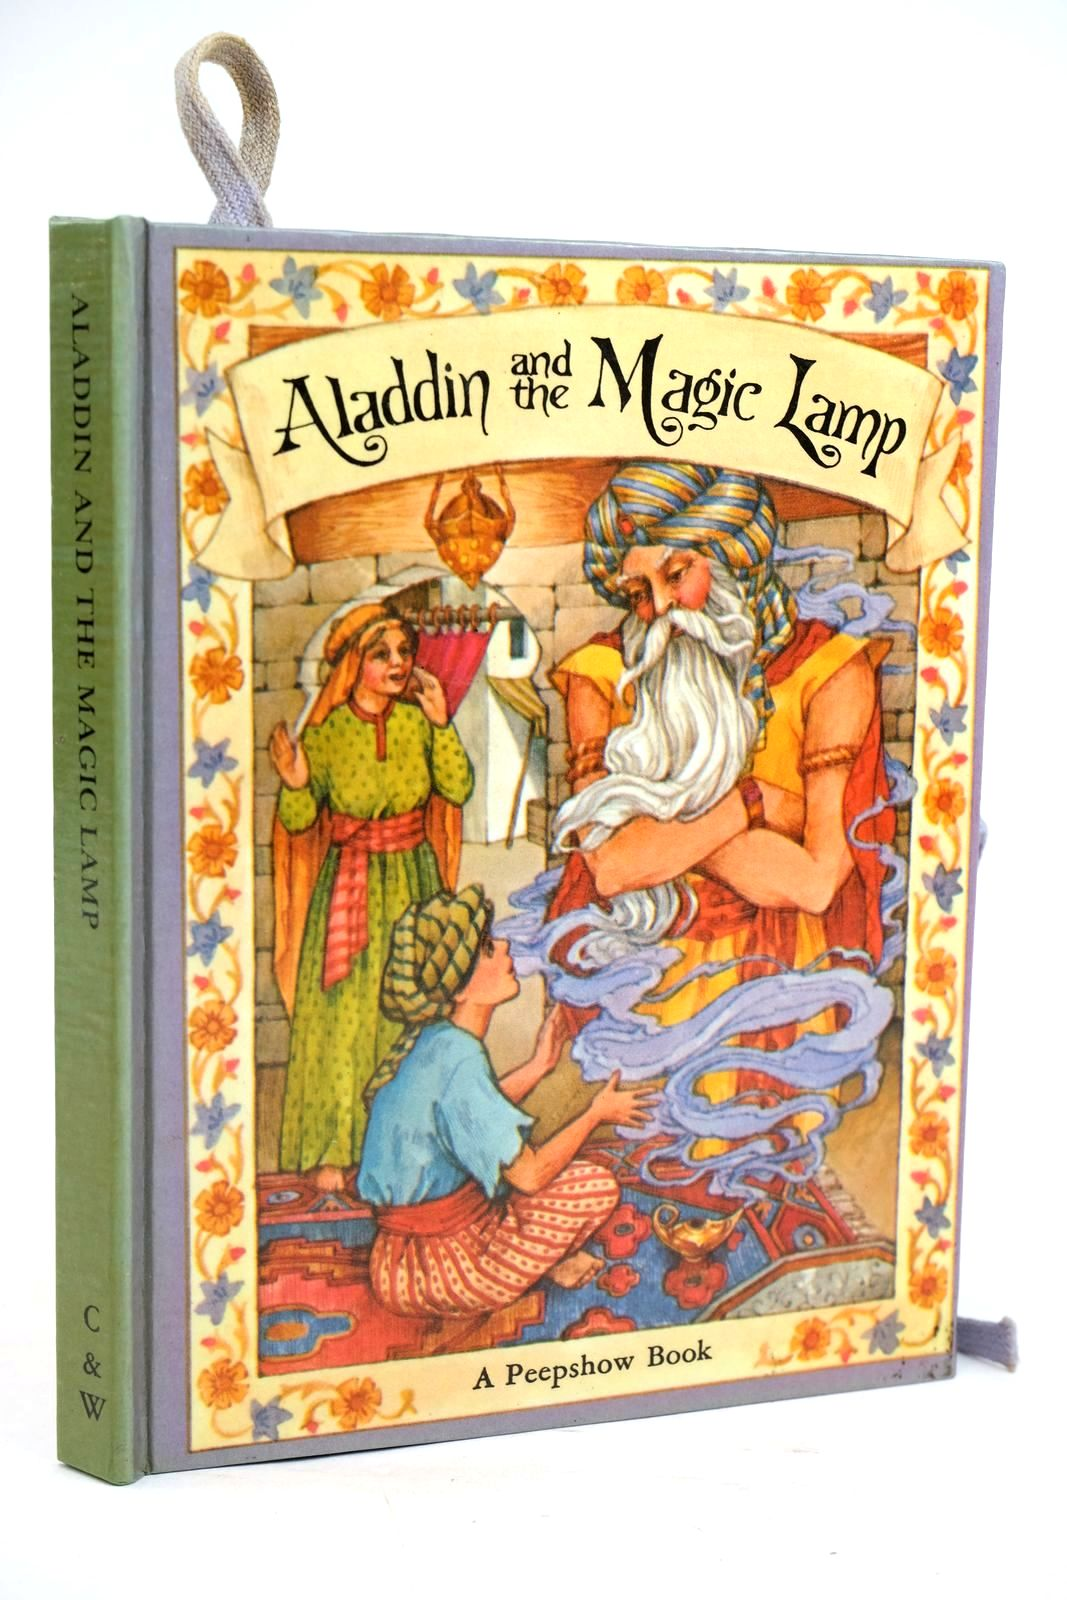 Photo of ALADDIN AND THE MAGIC LAMP illustrated by Griffith, Linda published by Chatto & Windus (STOCK CODE: 1319595)  for sale by Stella & Rose's Books